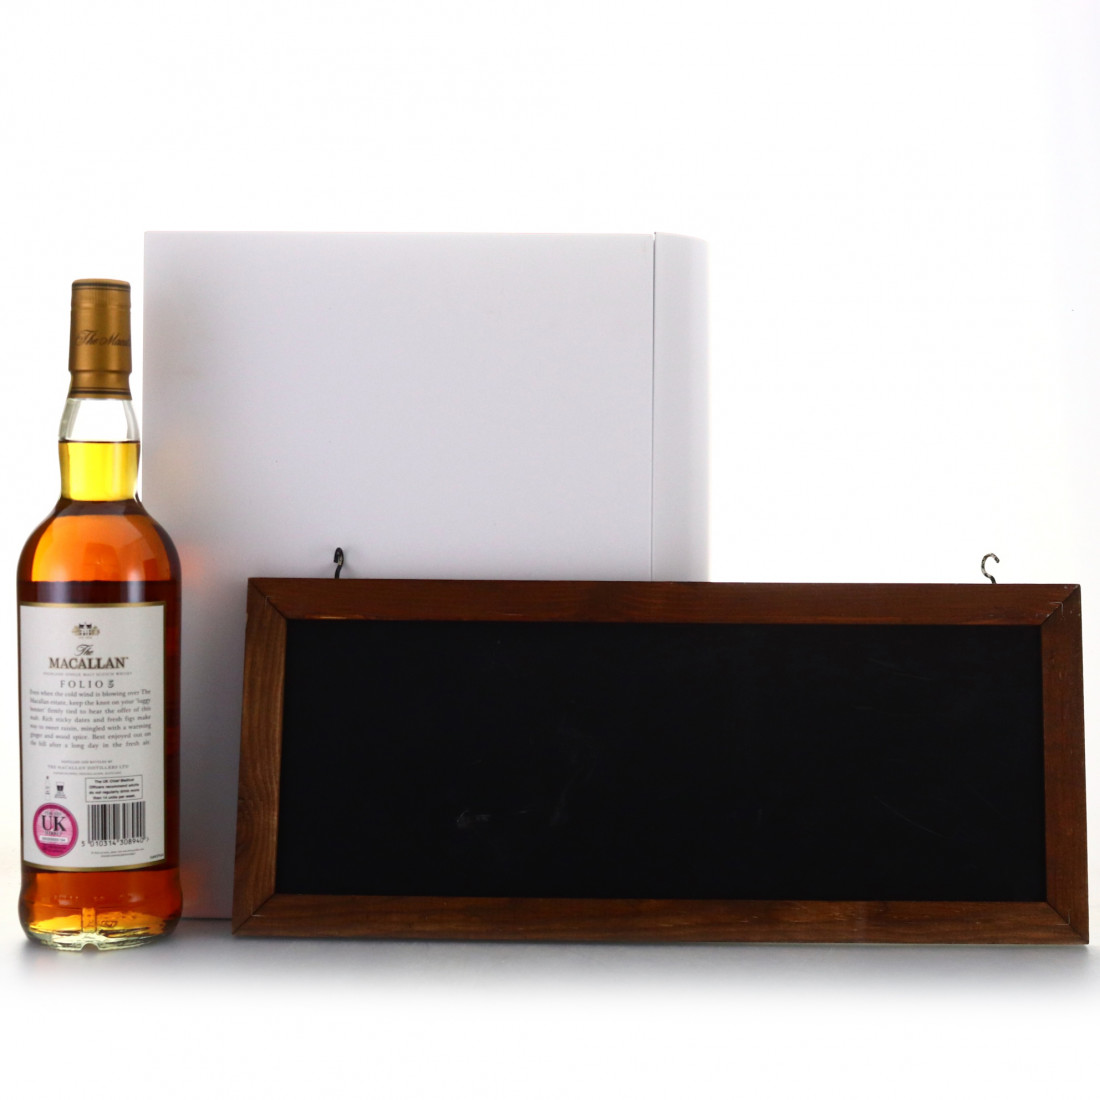 Macallan Archival Series Folio 5 with Sign